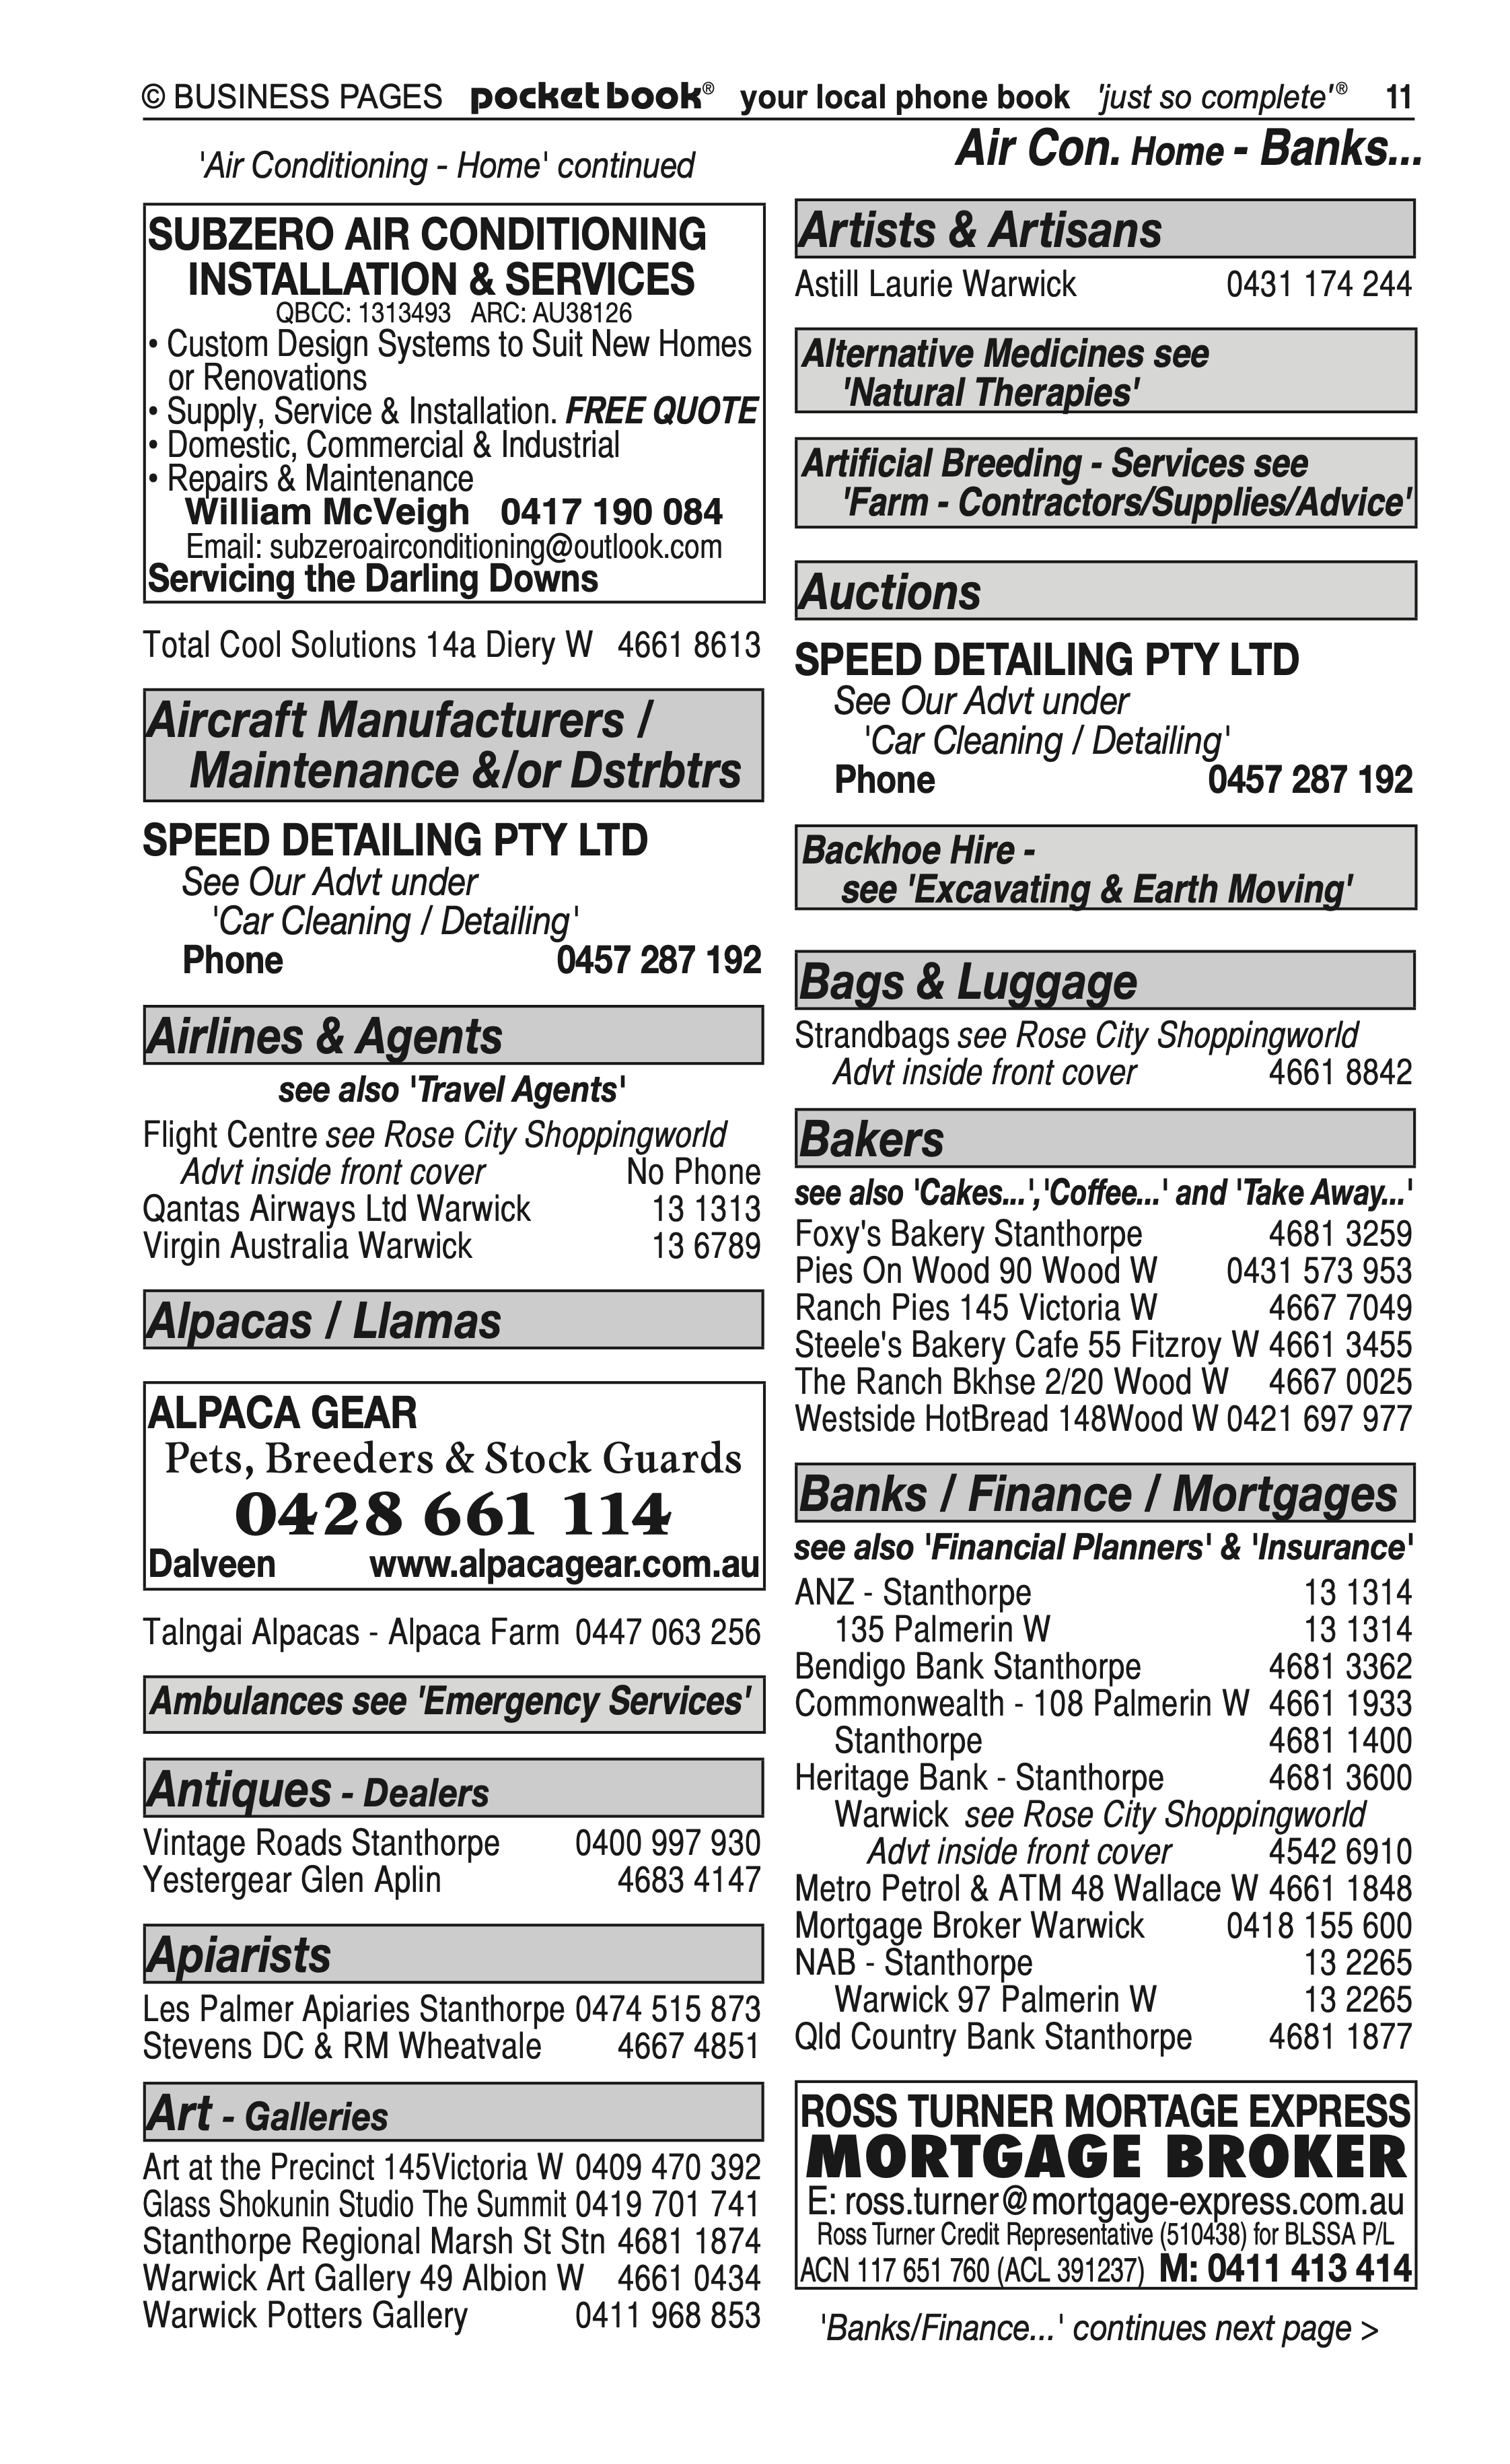 Speed Detailing Pty Ltd | Agricultural – Machinery & Services in Warwick | PBezy Pocket Books local directories - page 11